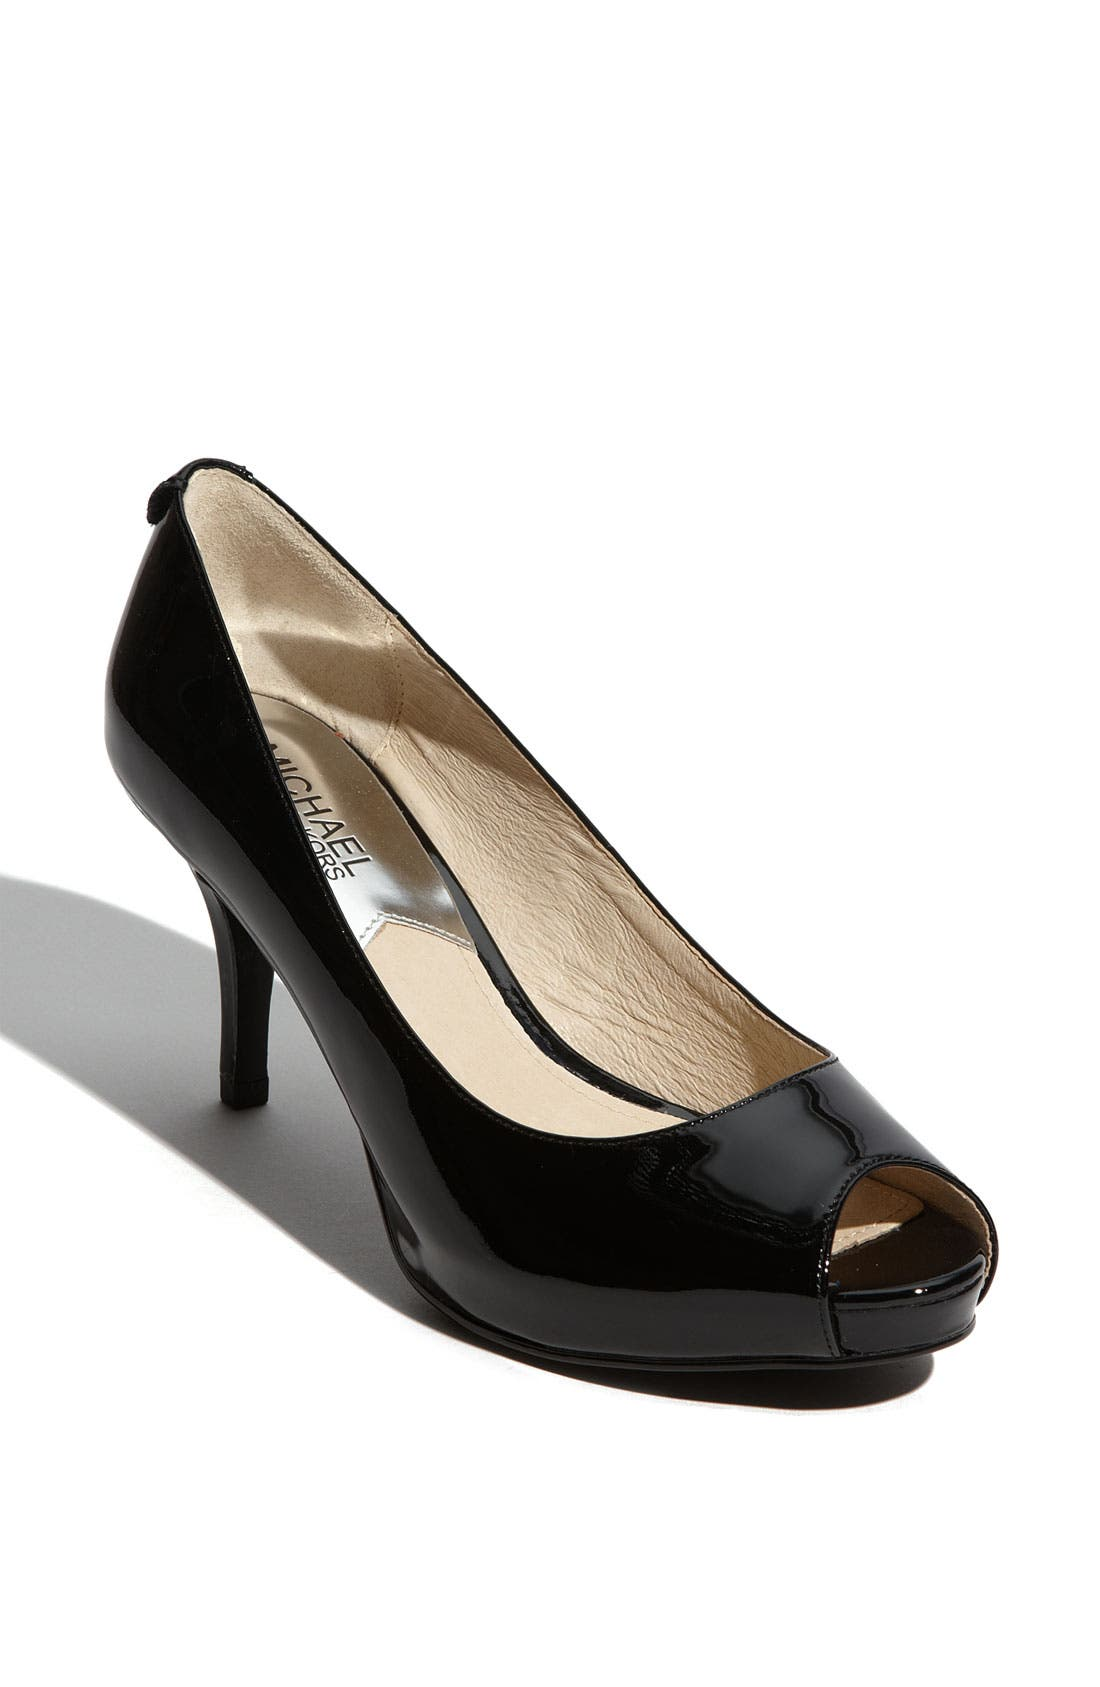 Alternate Image 1 Selected - MICHAEL Michael Kors 'Flex' Peep Toe Pump